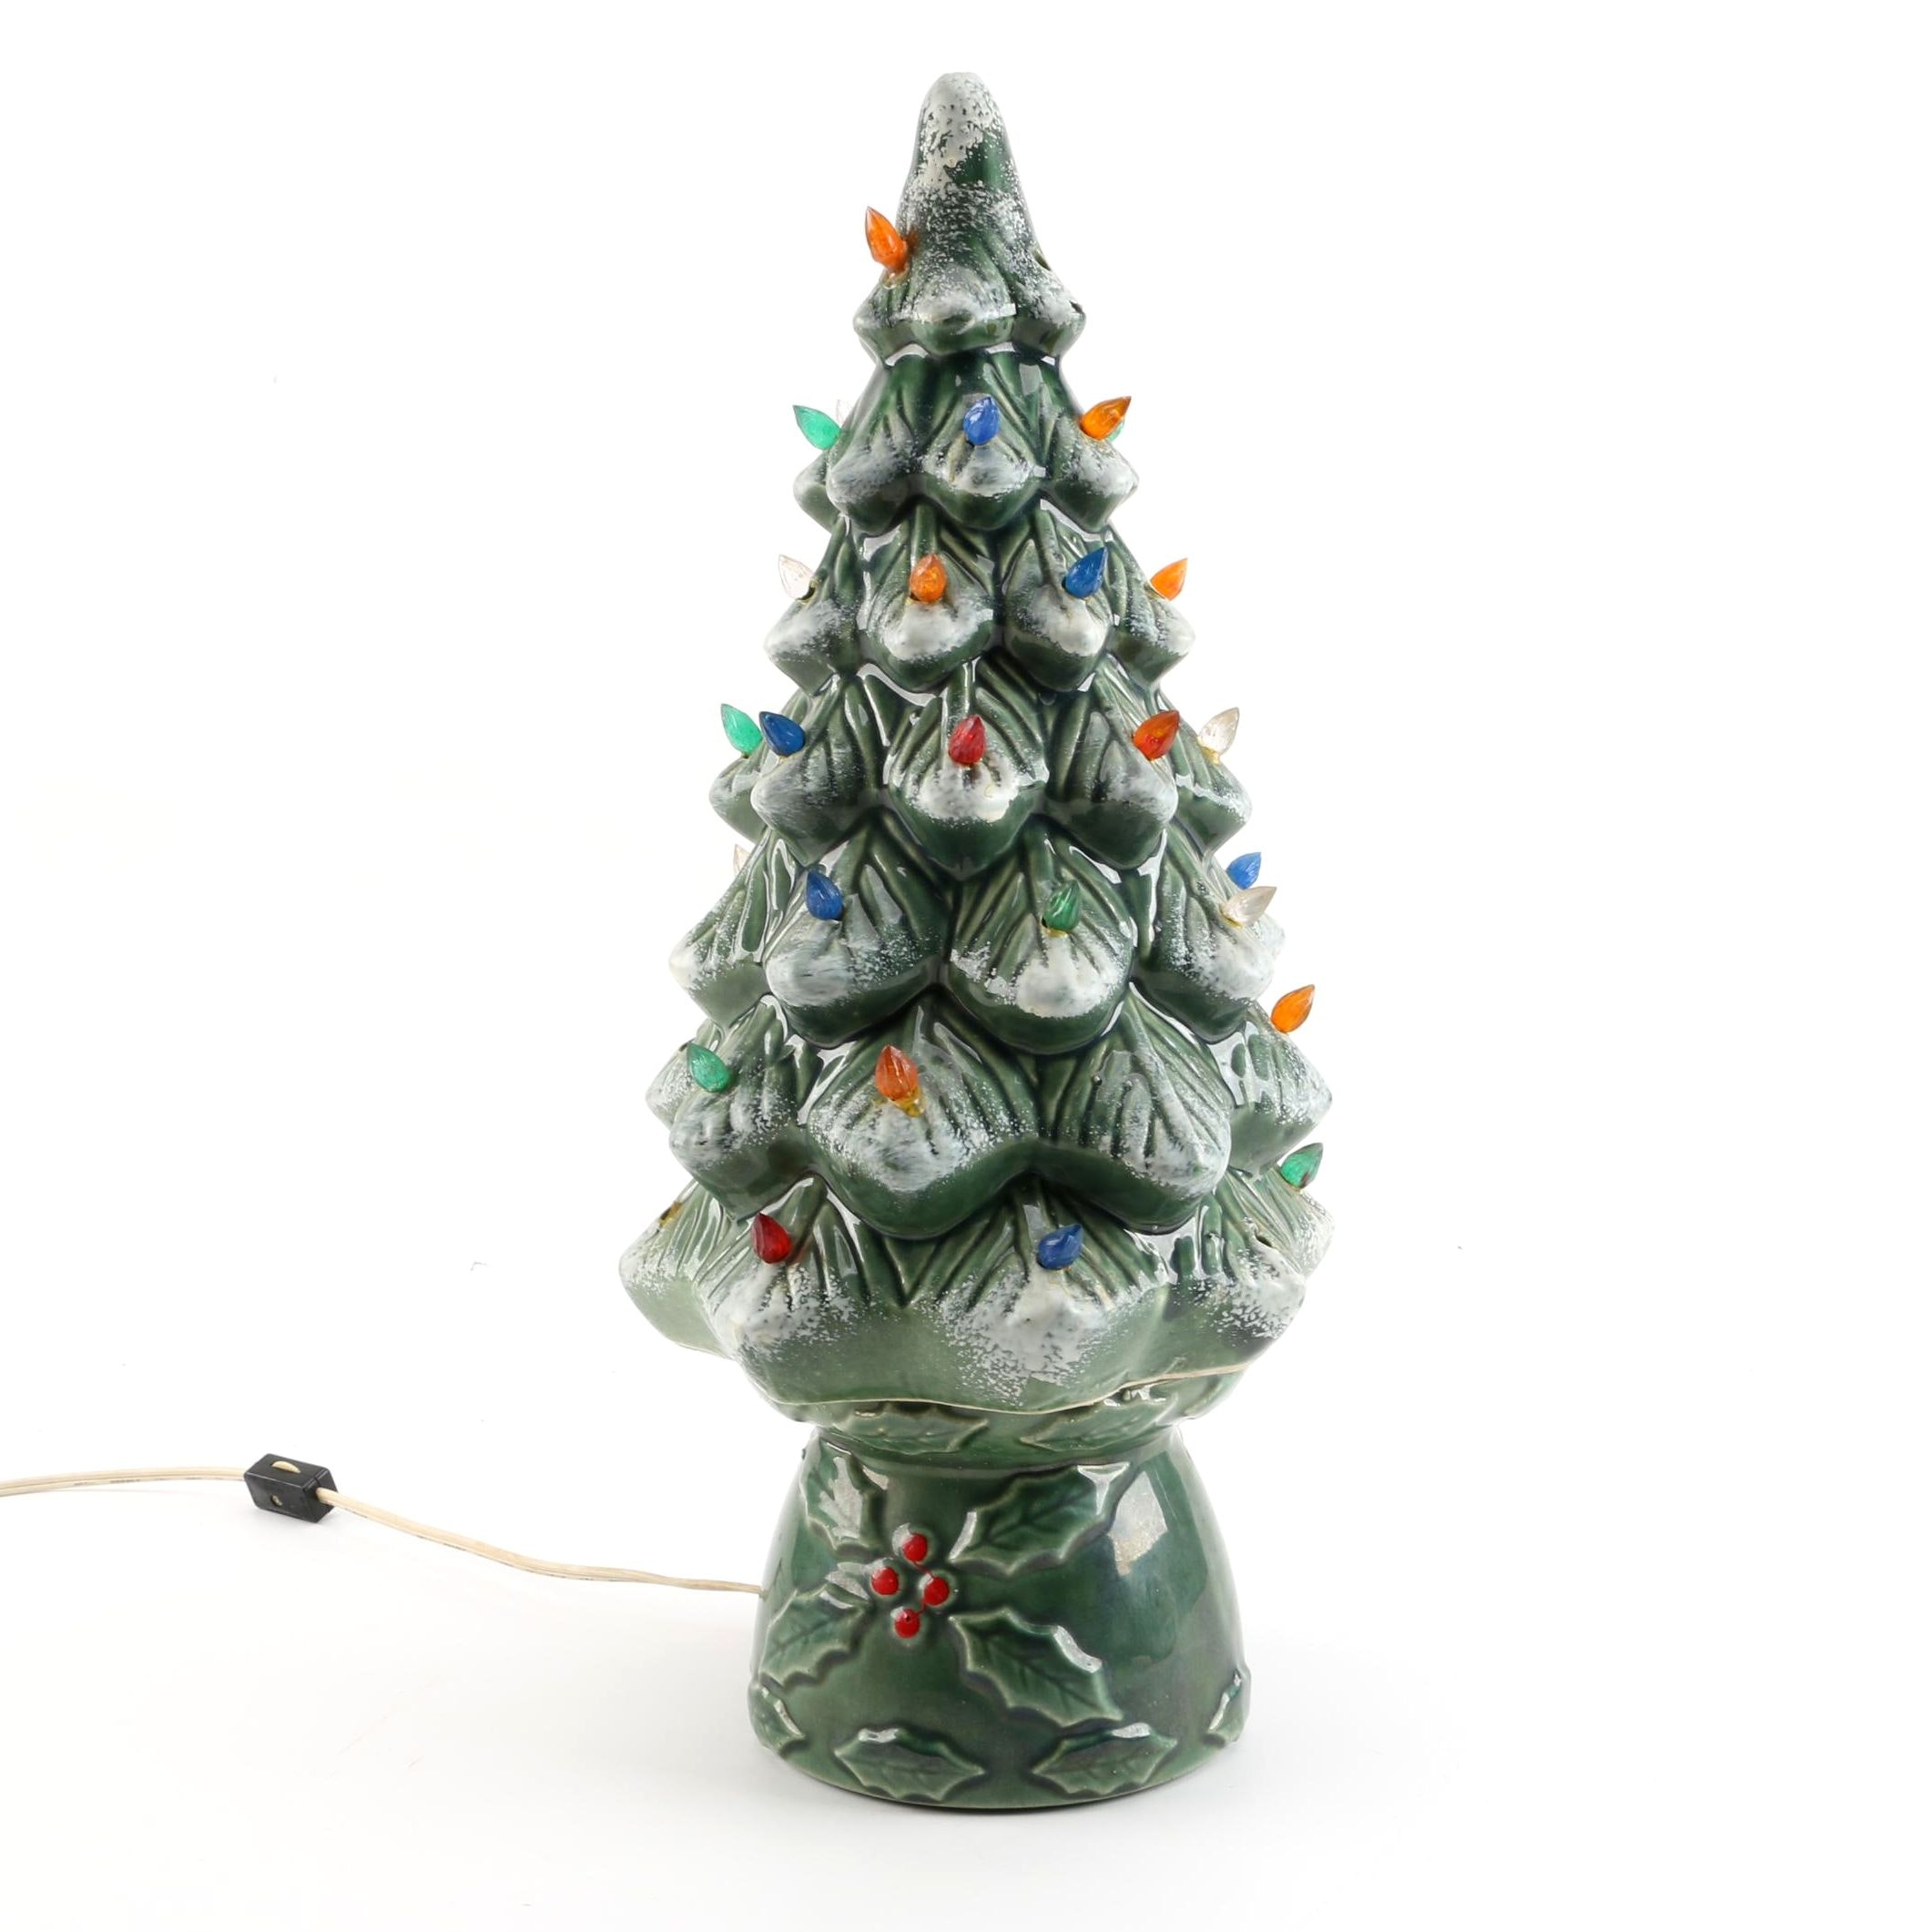 Vintage Ceramic Christmas Tree Lamp by Concepts